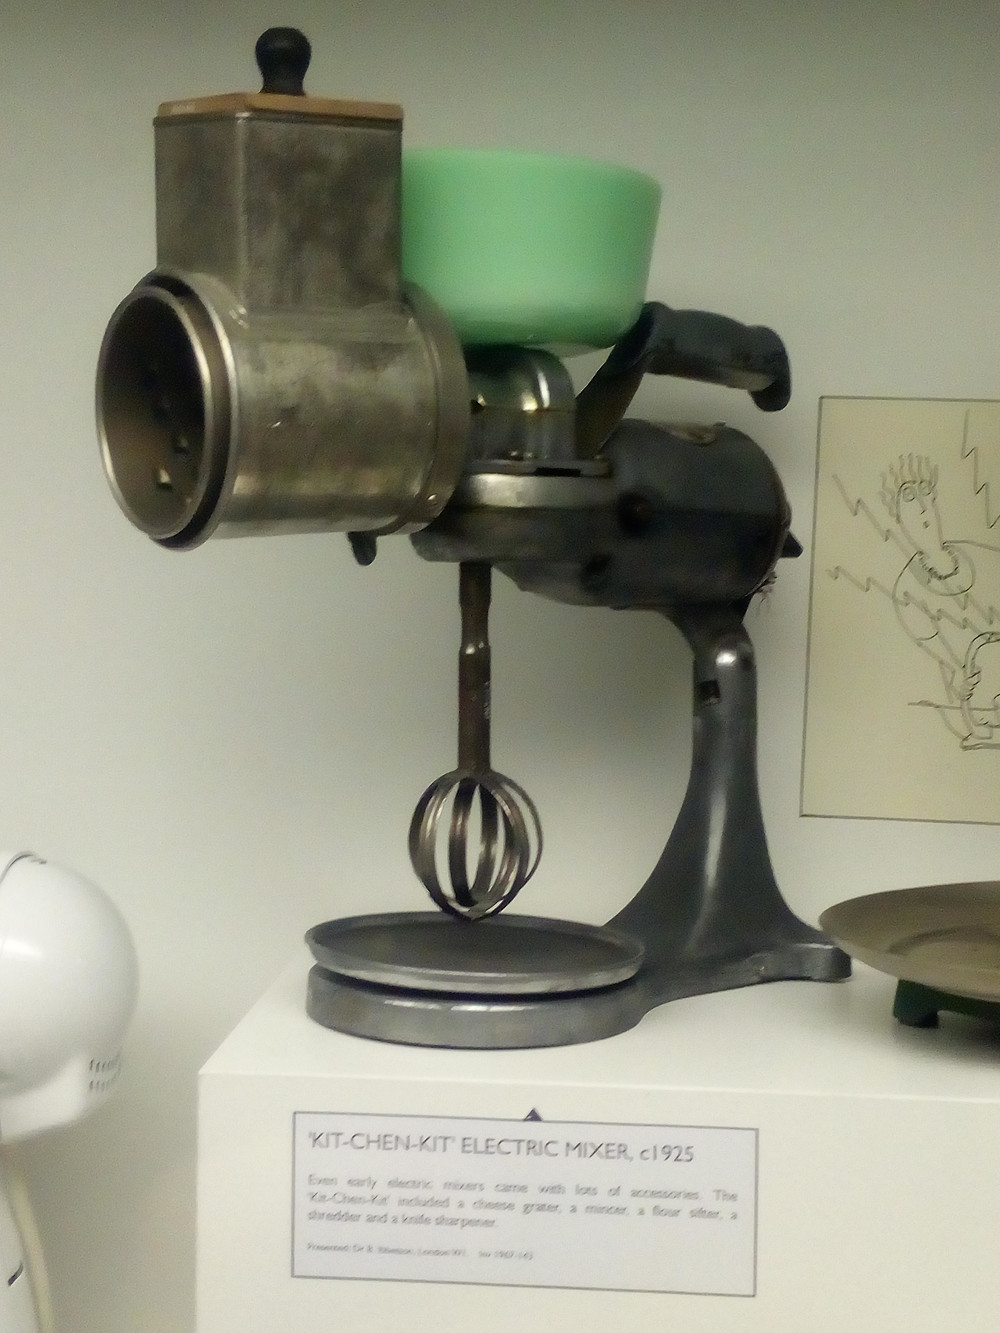 Electric mixer from around 1925